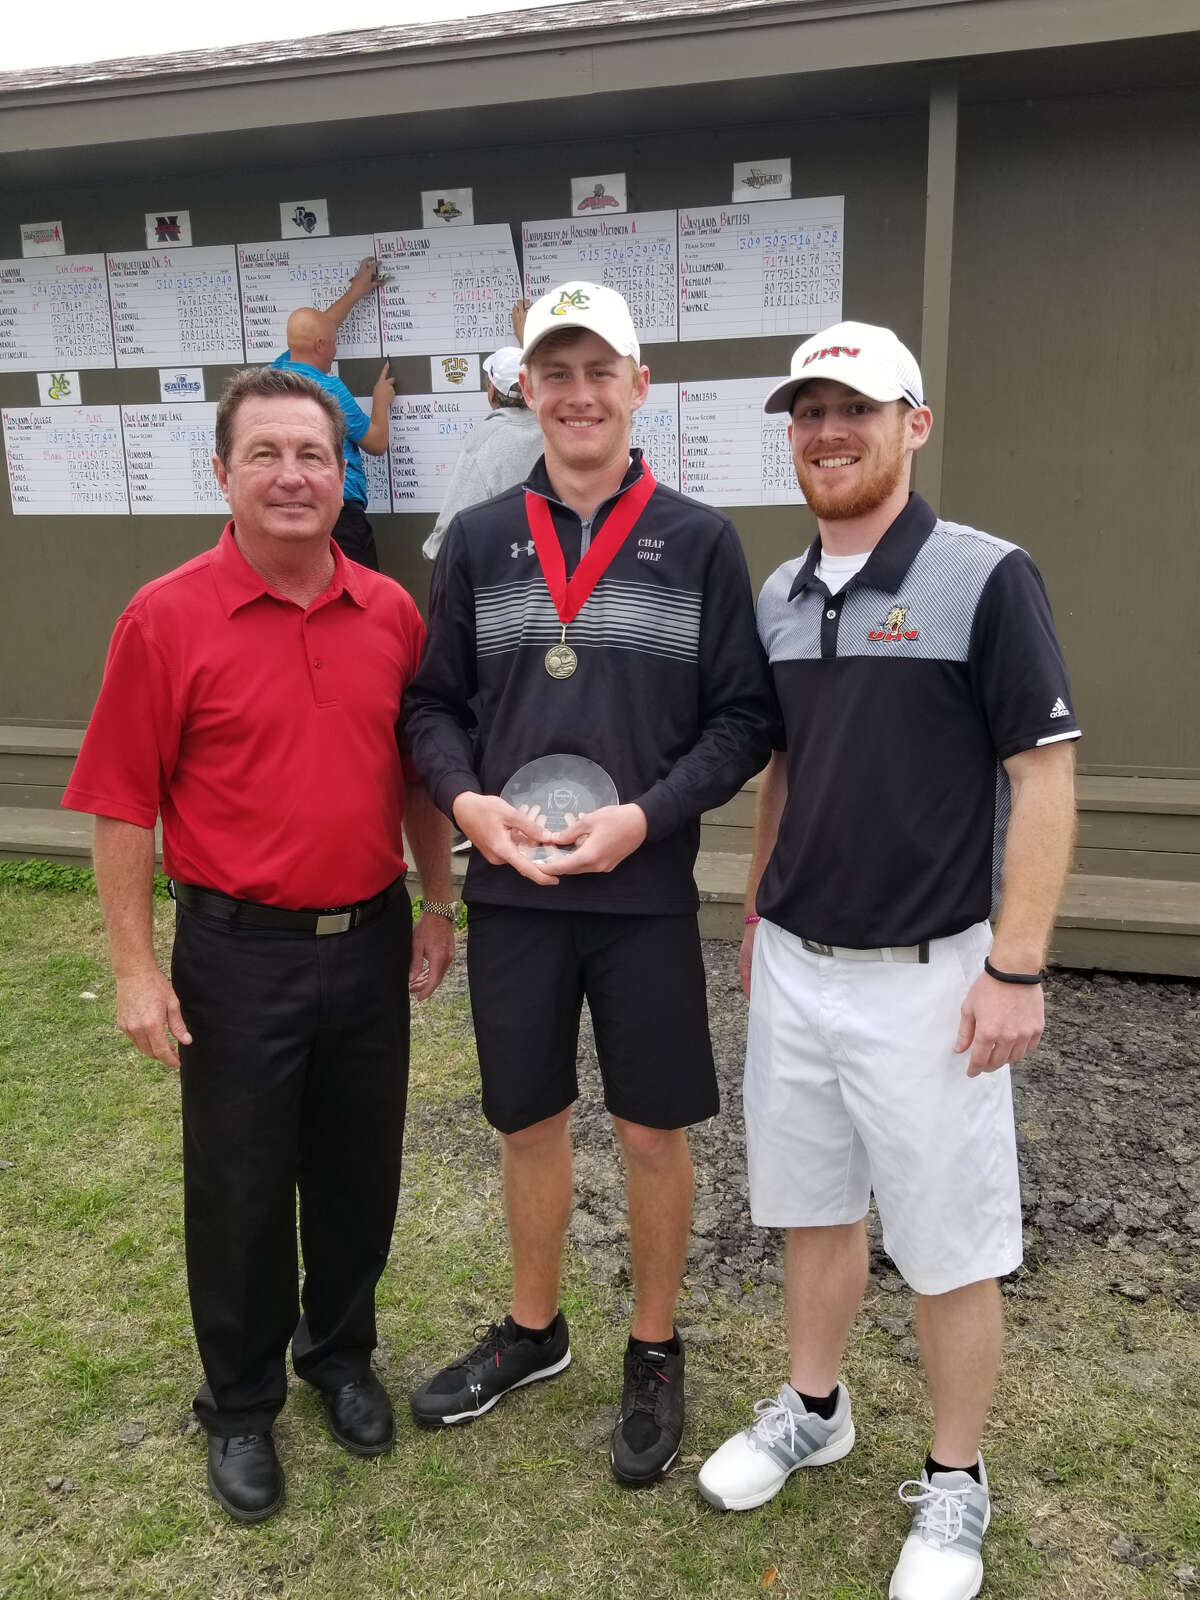 Midland College's Callum Bruce, center, holds his award for winning the Claude Jacobs Invitational in Victoria Monday. Courtesy photo